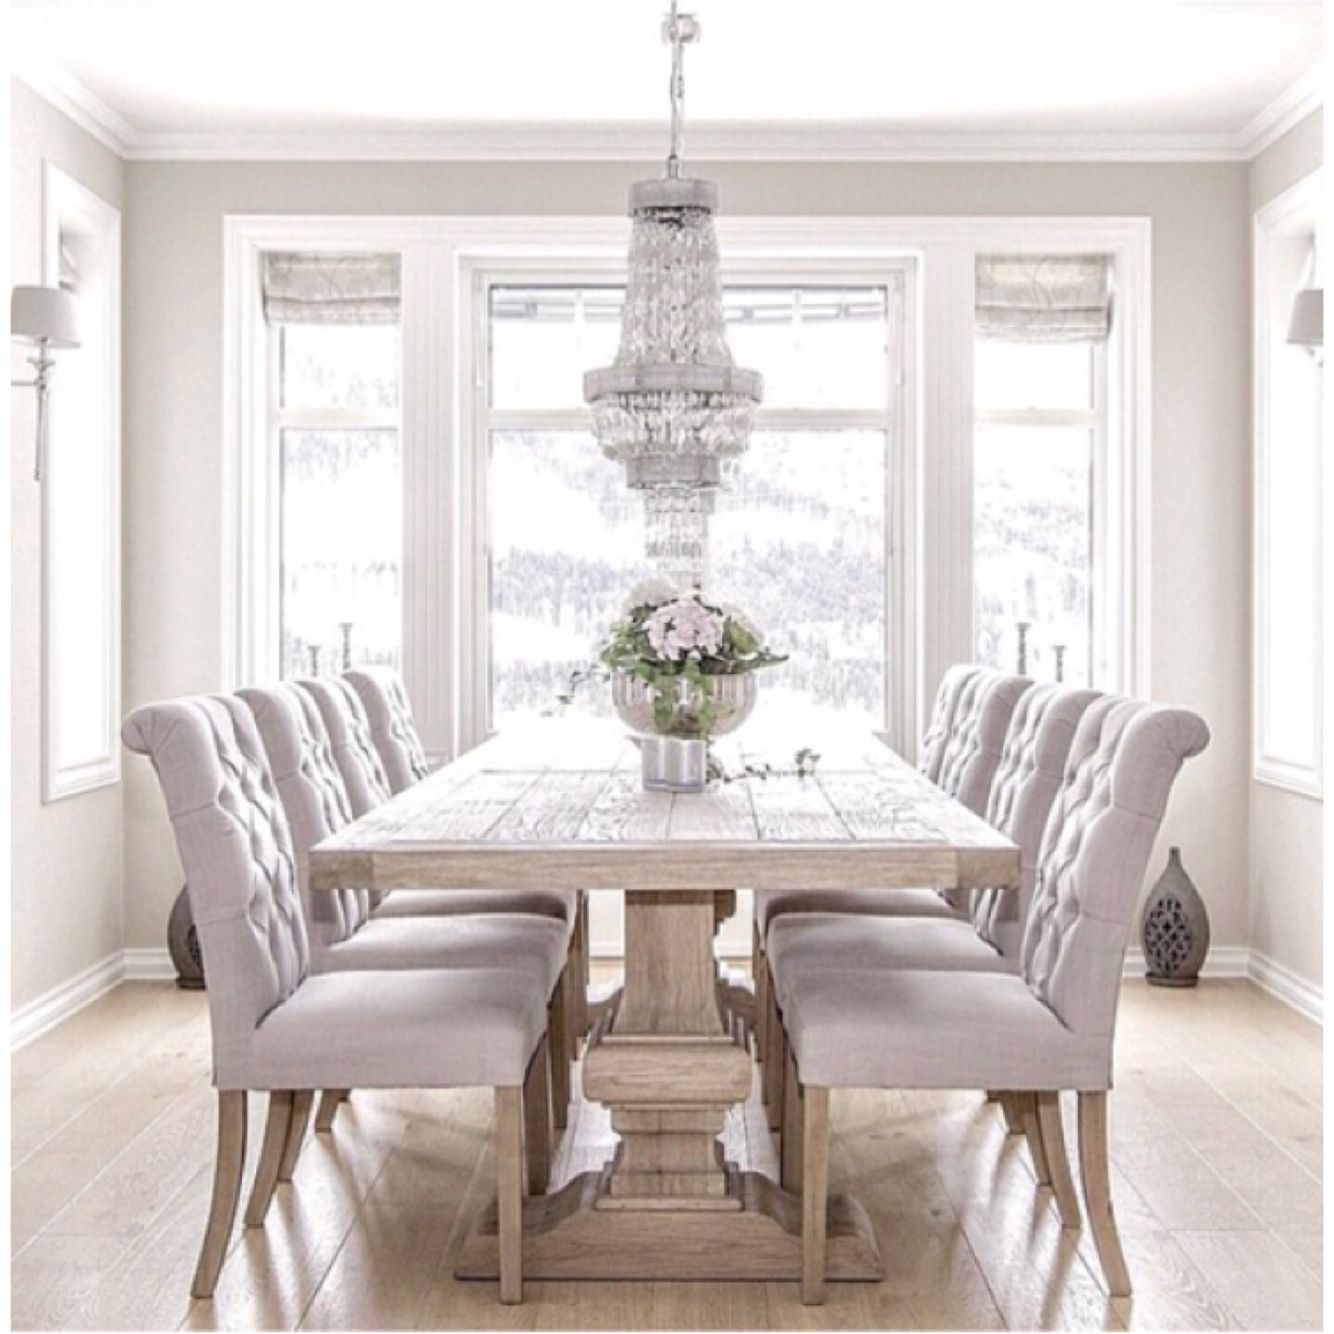 25 Elegant And Exquisite Gray Dining Room Ideas: Luxury Dining Room, Luxury